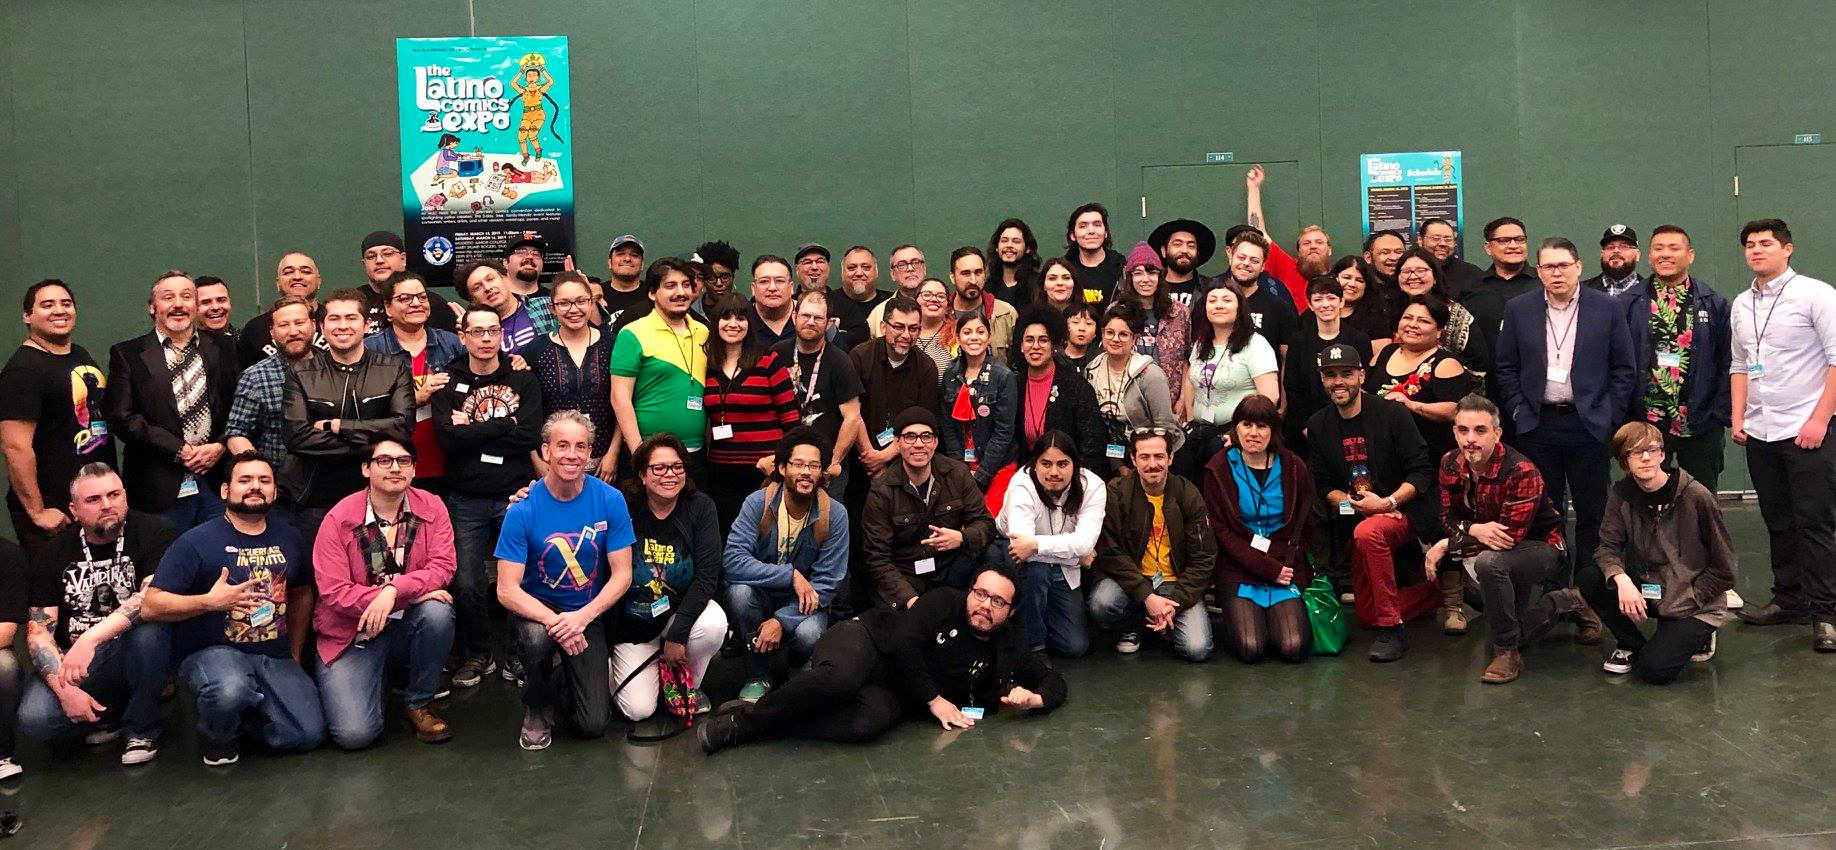 Latino Comic Book Expo 2019